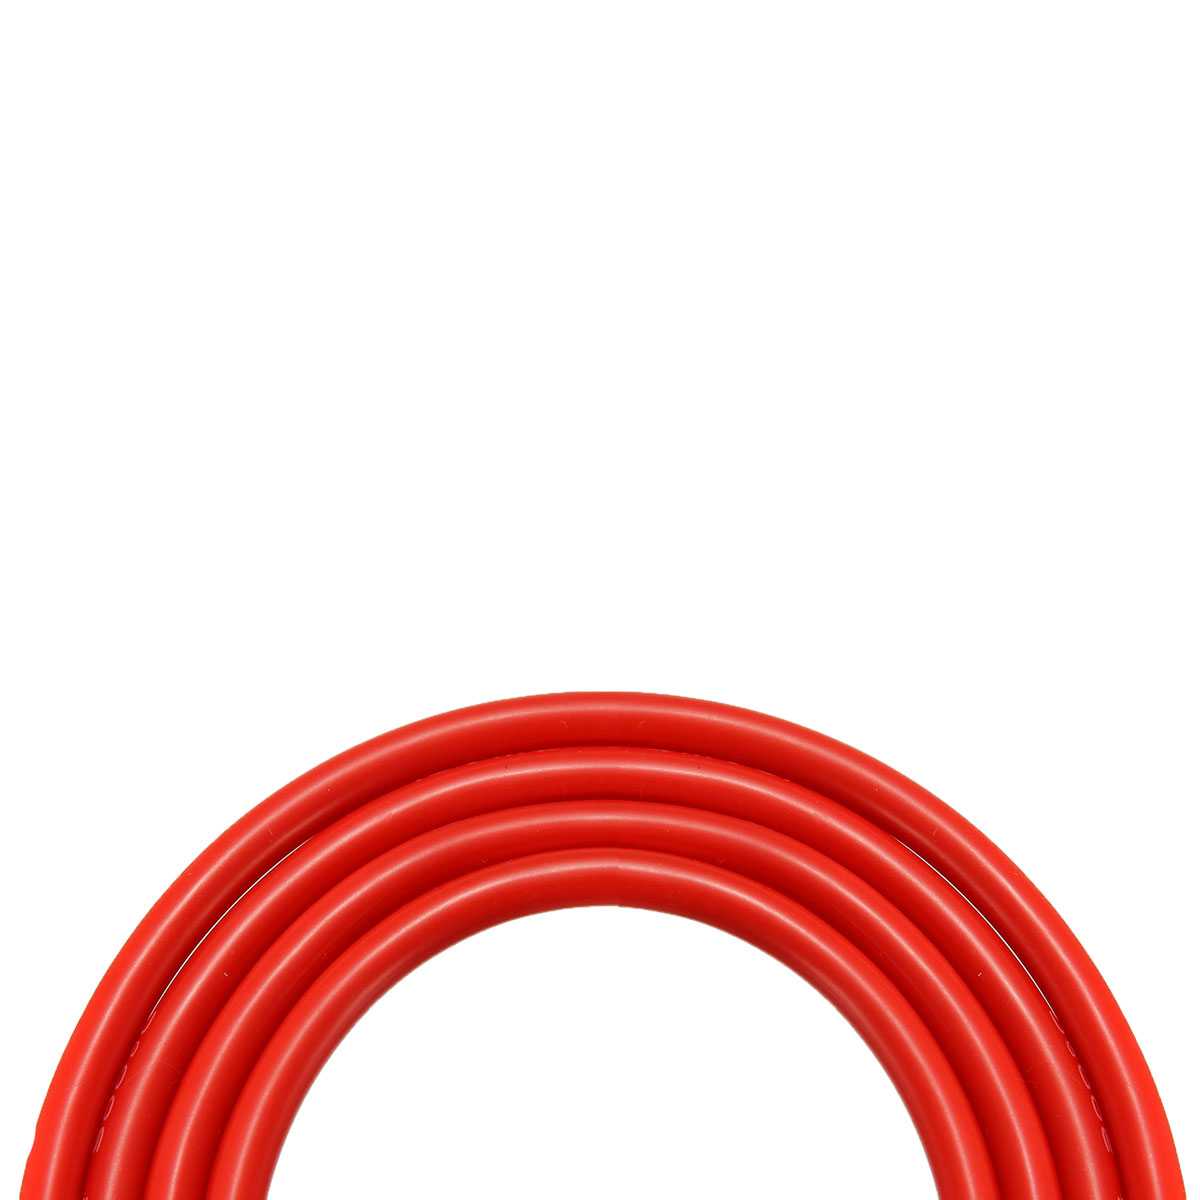 DANIU 5 Meter Red Silicone Wire Cable 10/12/14/16/18/20/22AWG Flexible Cable